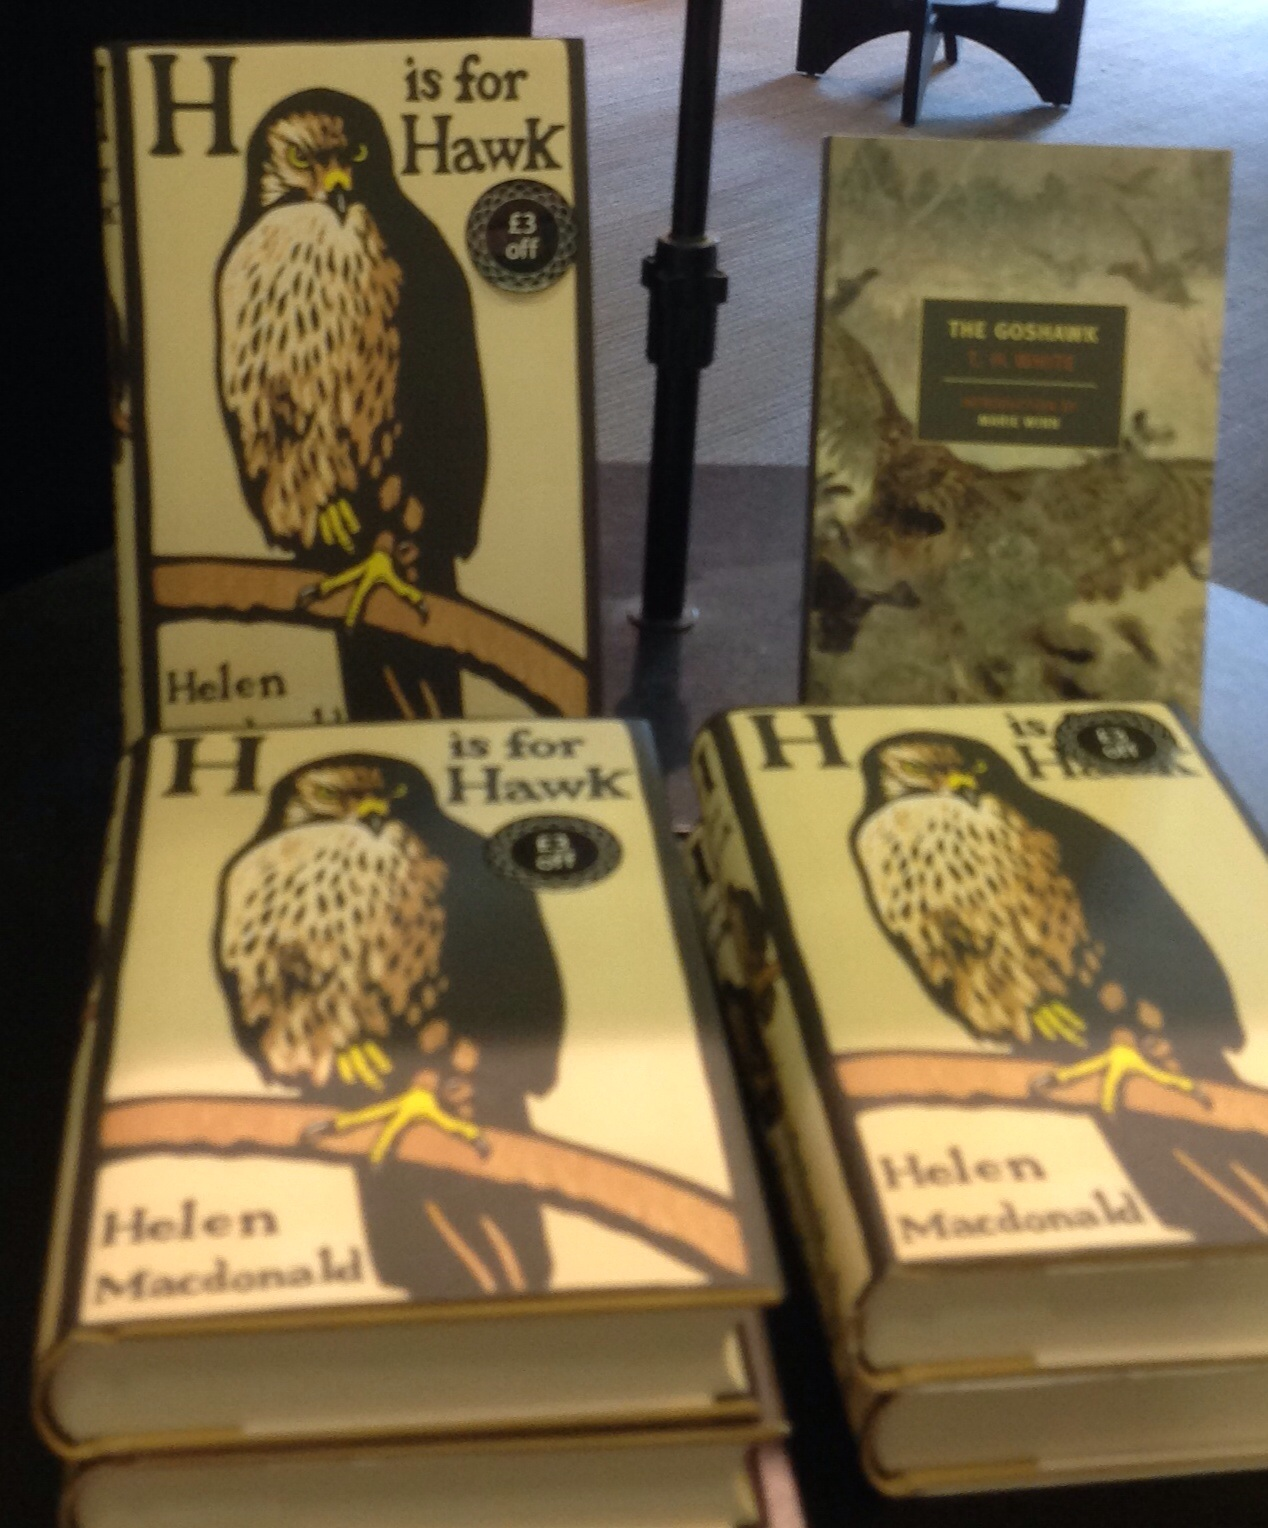 Helen Macdonald's H is for Hawk, alongside TH White's Goshawk.